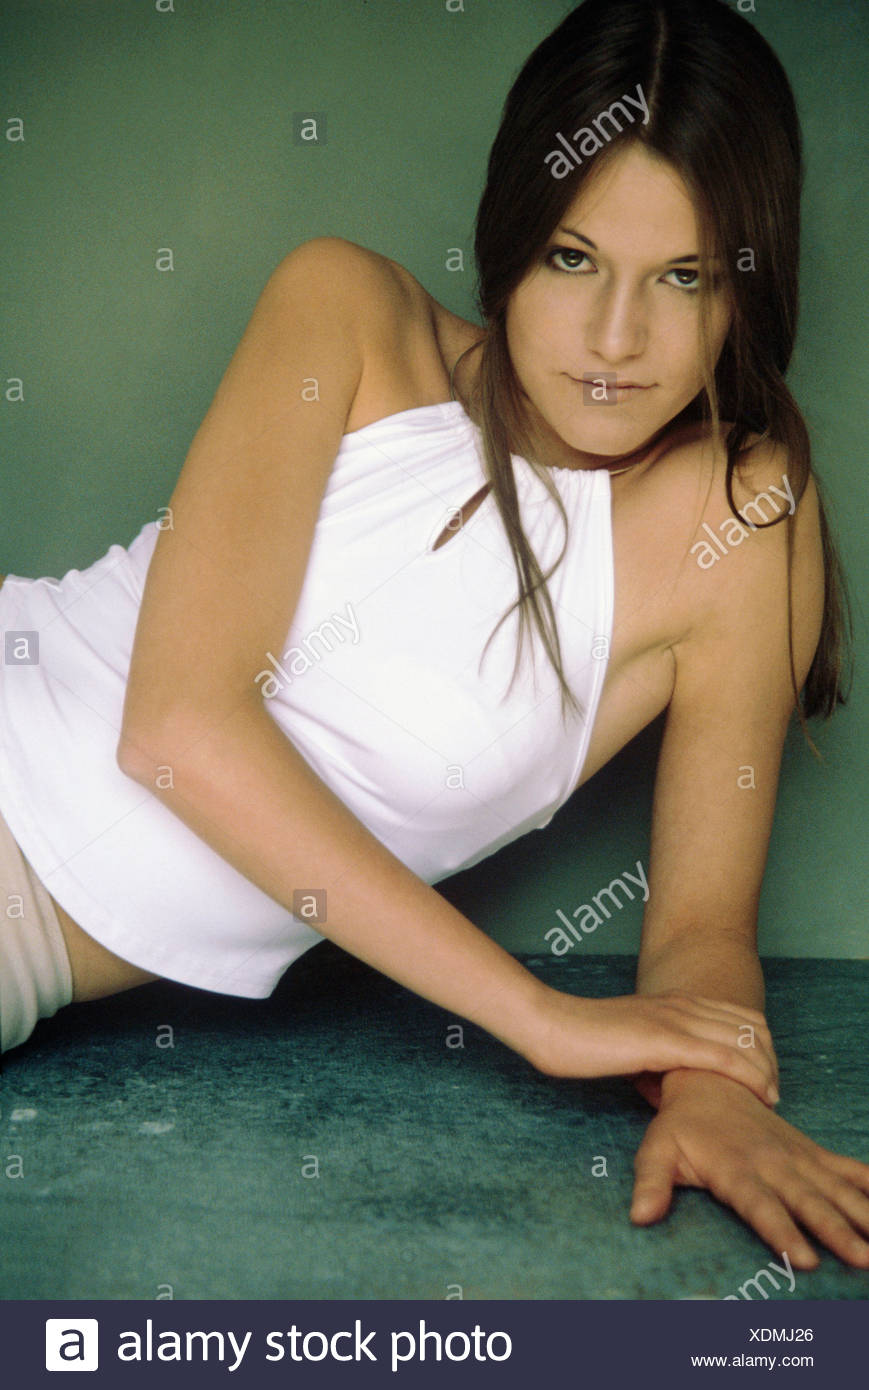 Young woman wearing white top - Stock Image